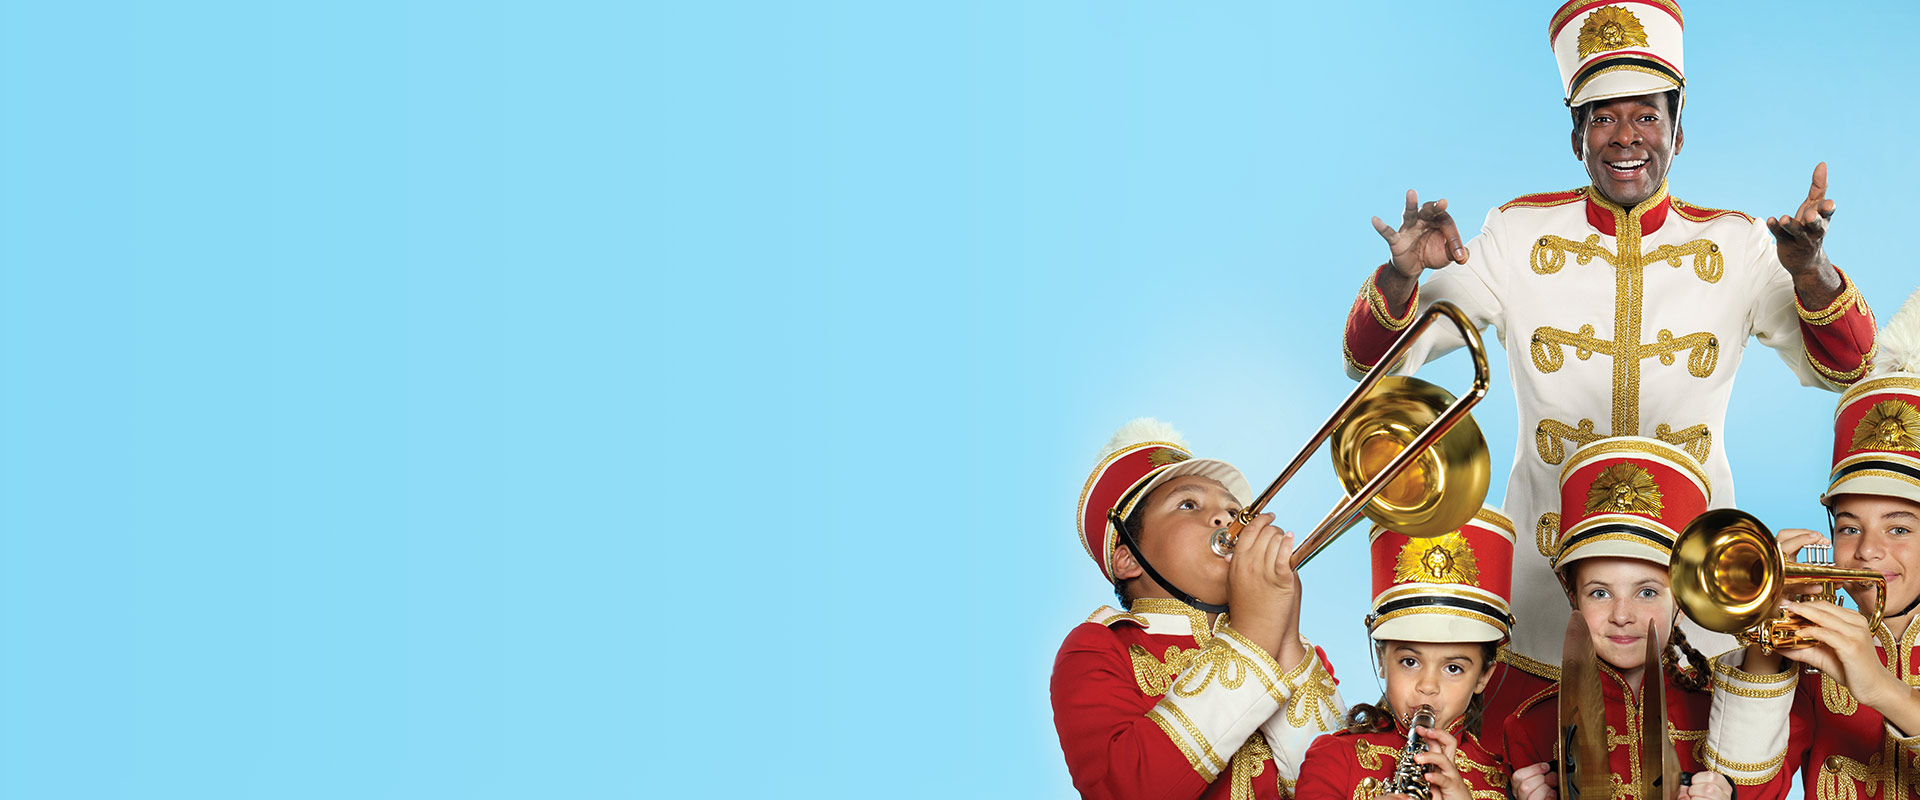 Kids' Tickets from $19.50 | Any show - Any Time